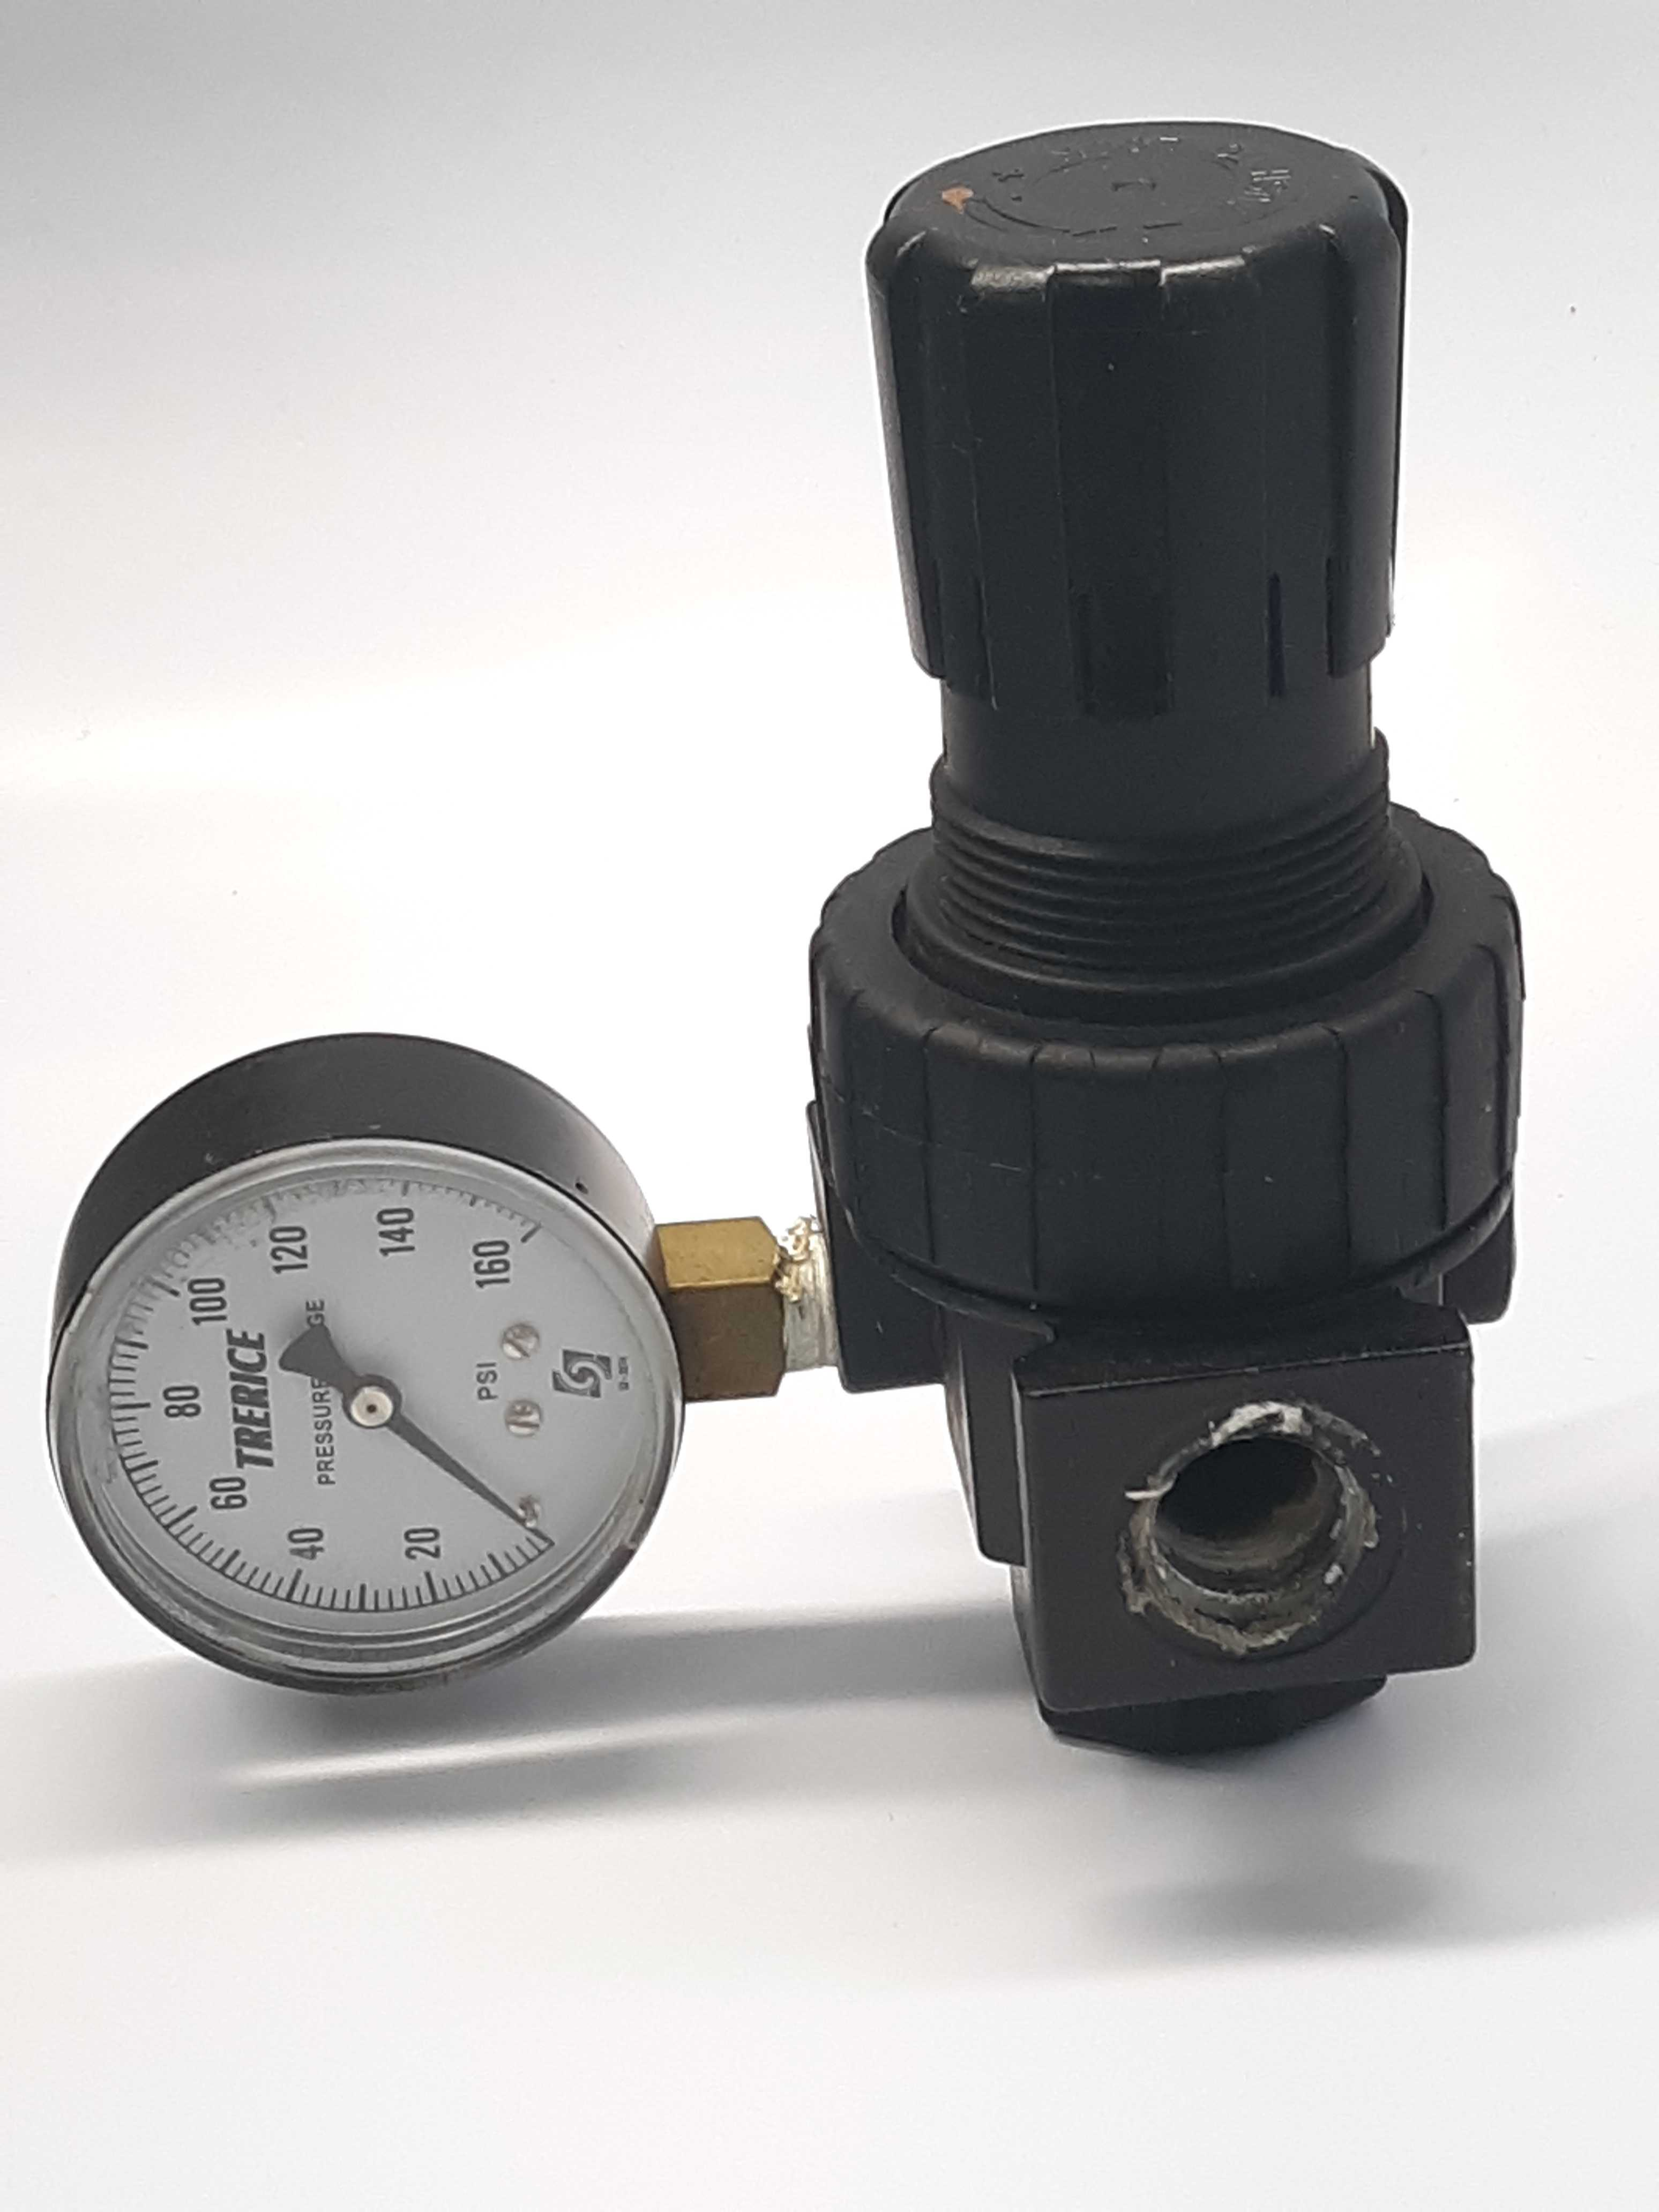 Trerice 07R313AC Pressure Regulator Gauge 0-160 PSI